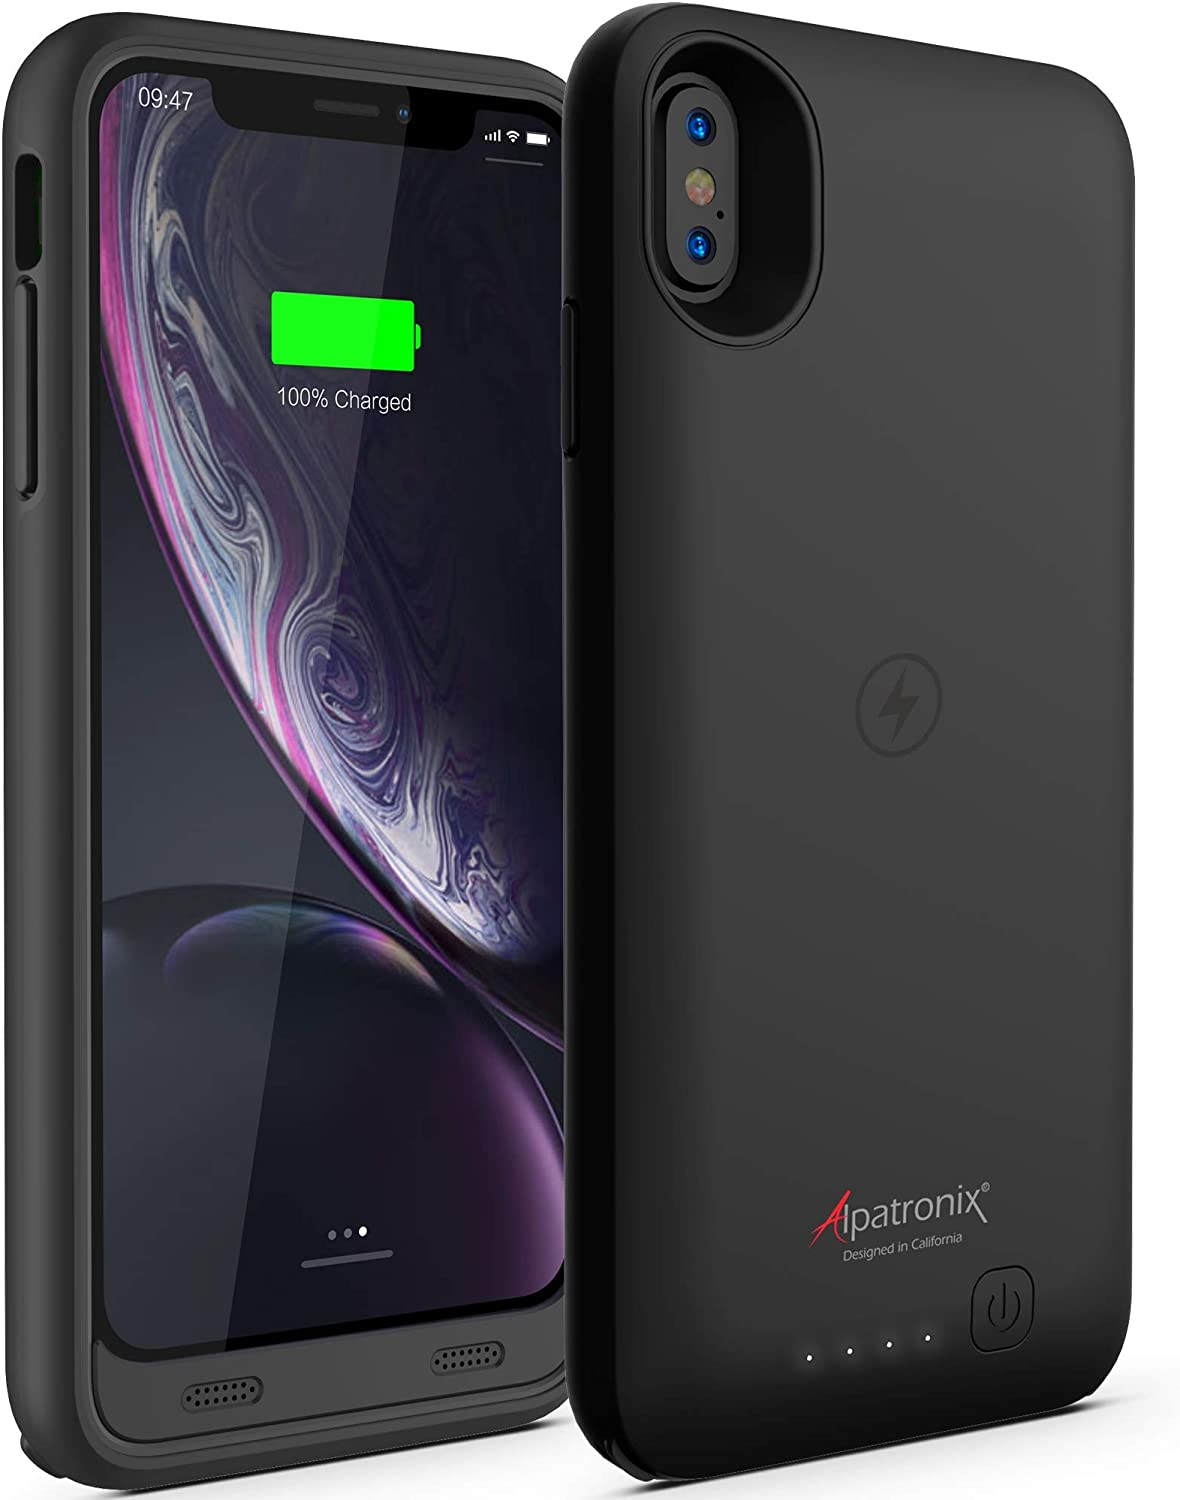 Alpatronix iPhone XR Battery Case, 3500mAh Portable Protective Extended Charger Cover with Qi Wireless Charging Compatible with iPhone XR (6.1 inch) BX10r - (Black)